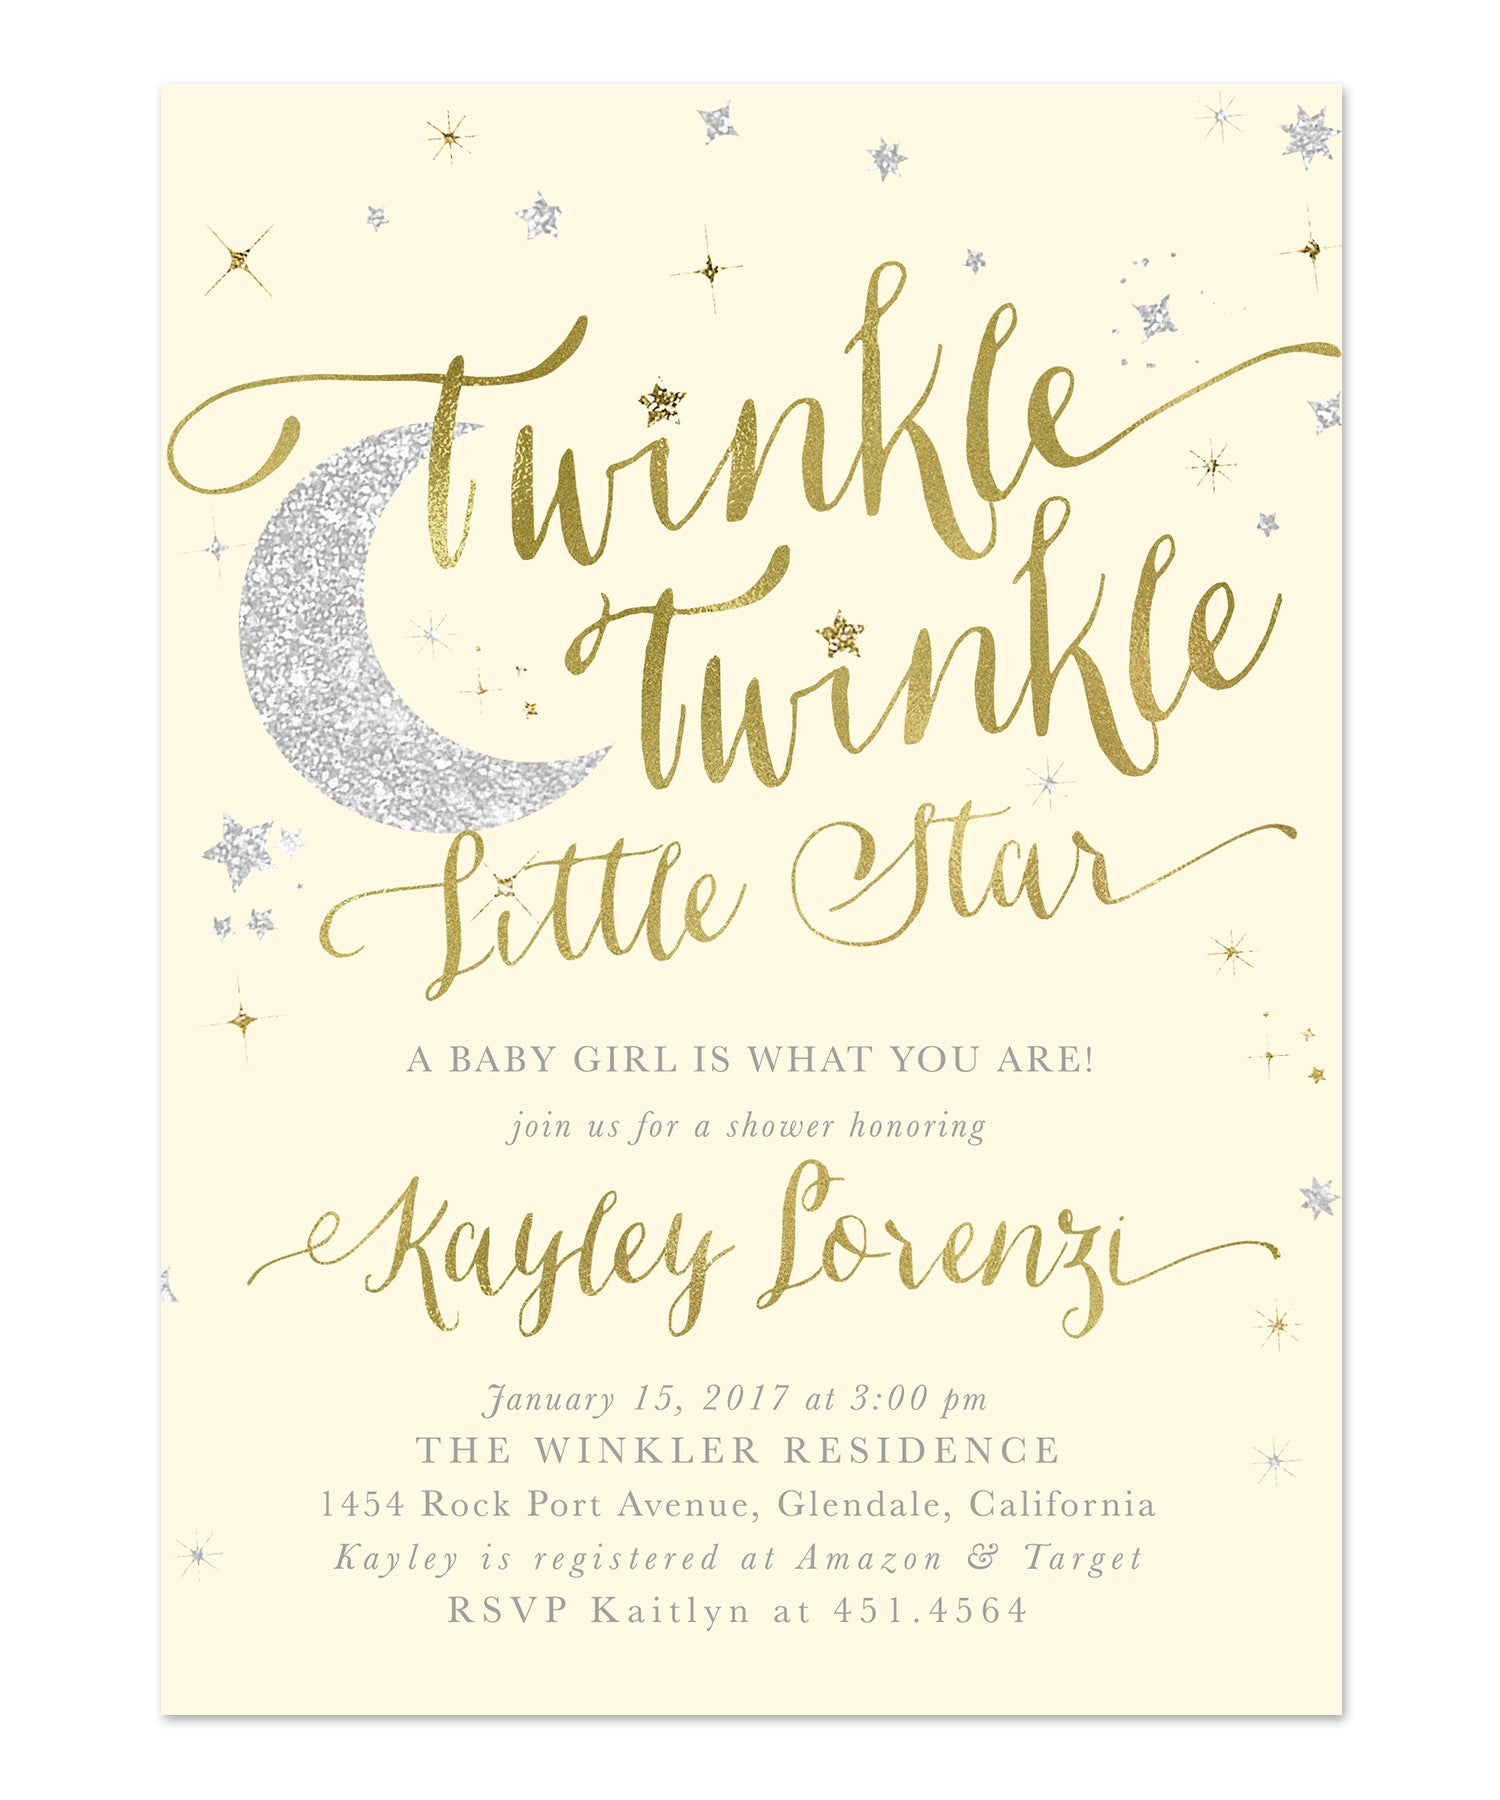 Holiday Invites Free as nice invitation layout